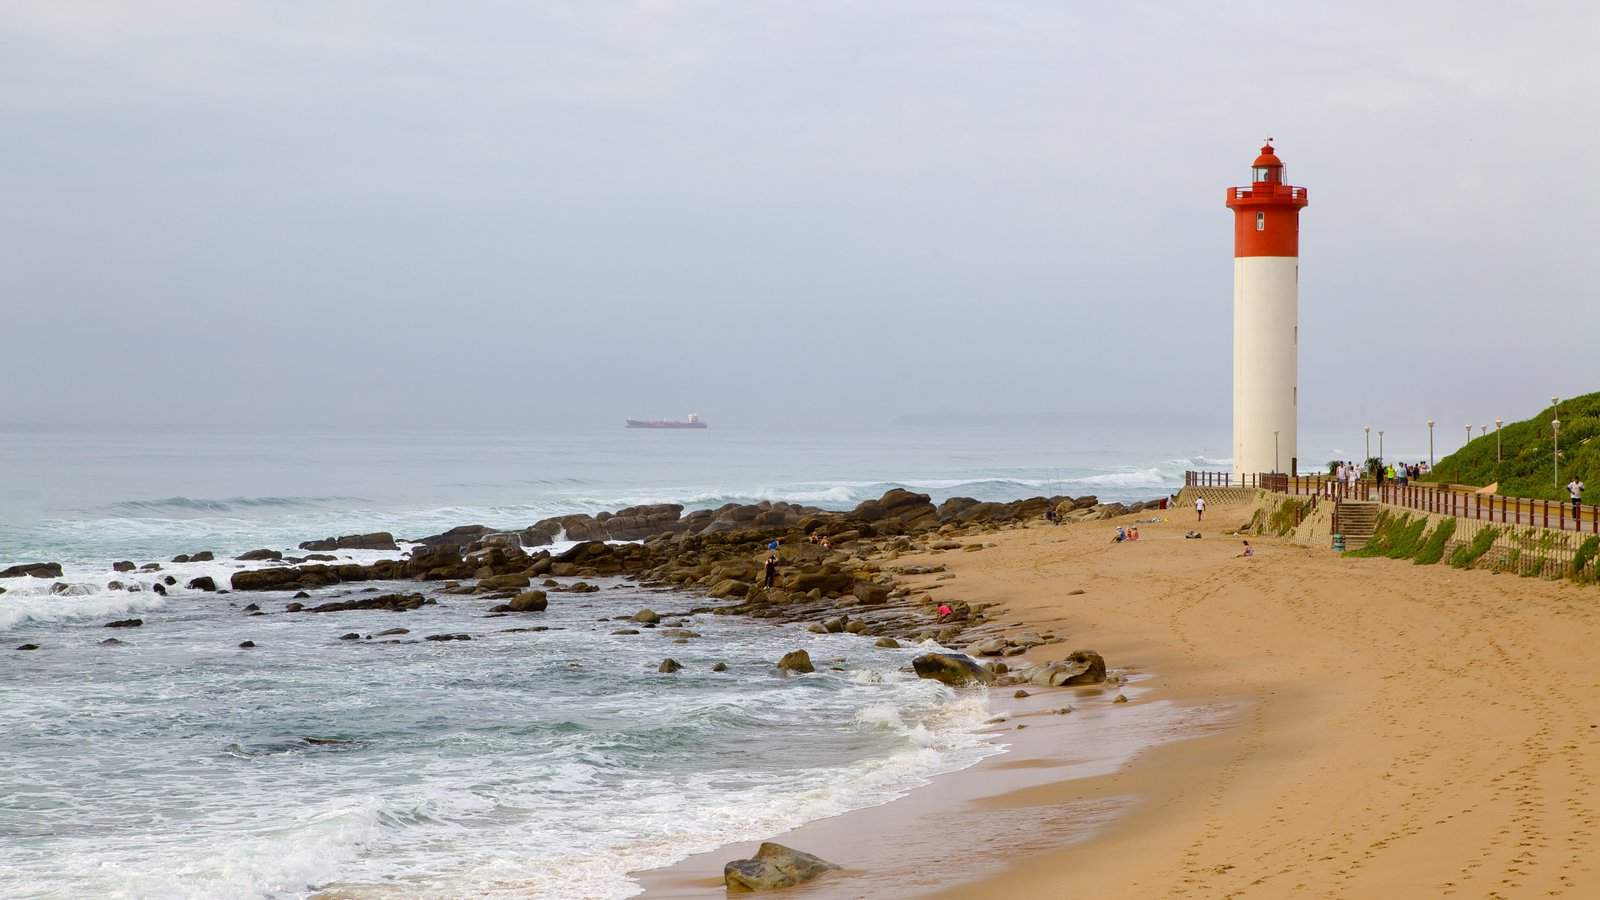 70838-umhlanga-rocks-beach